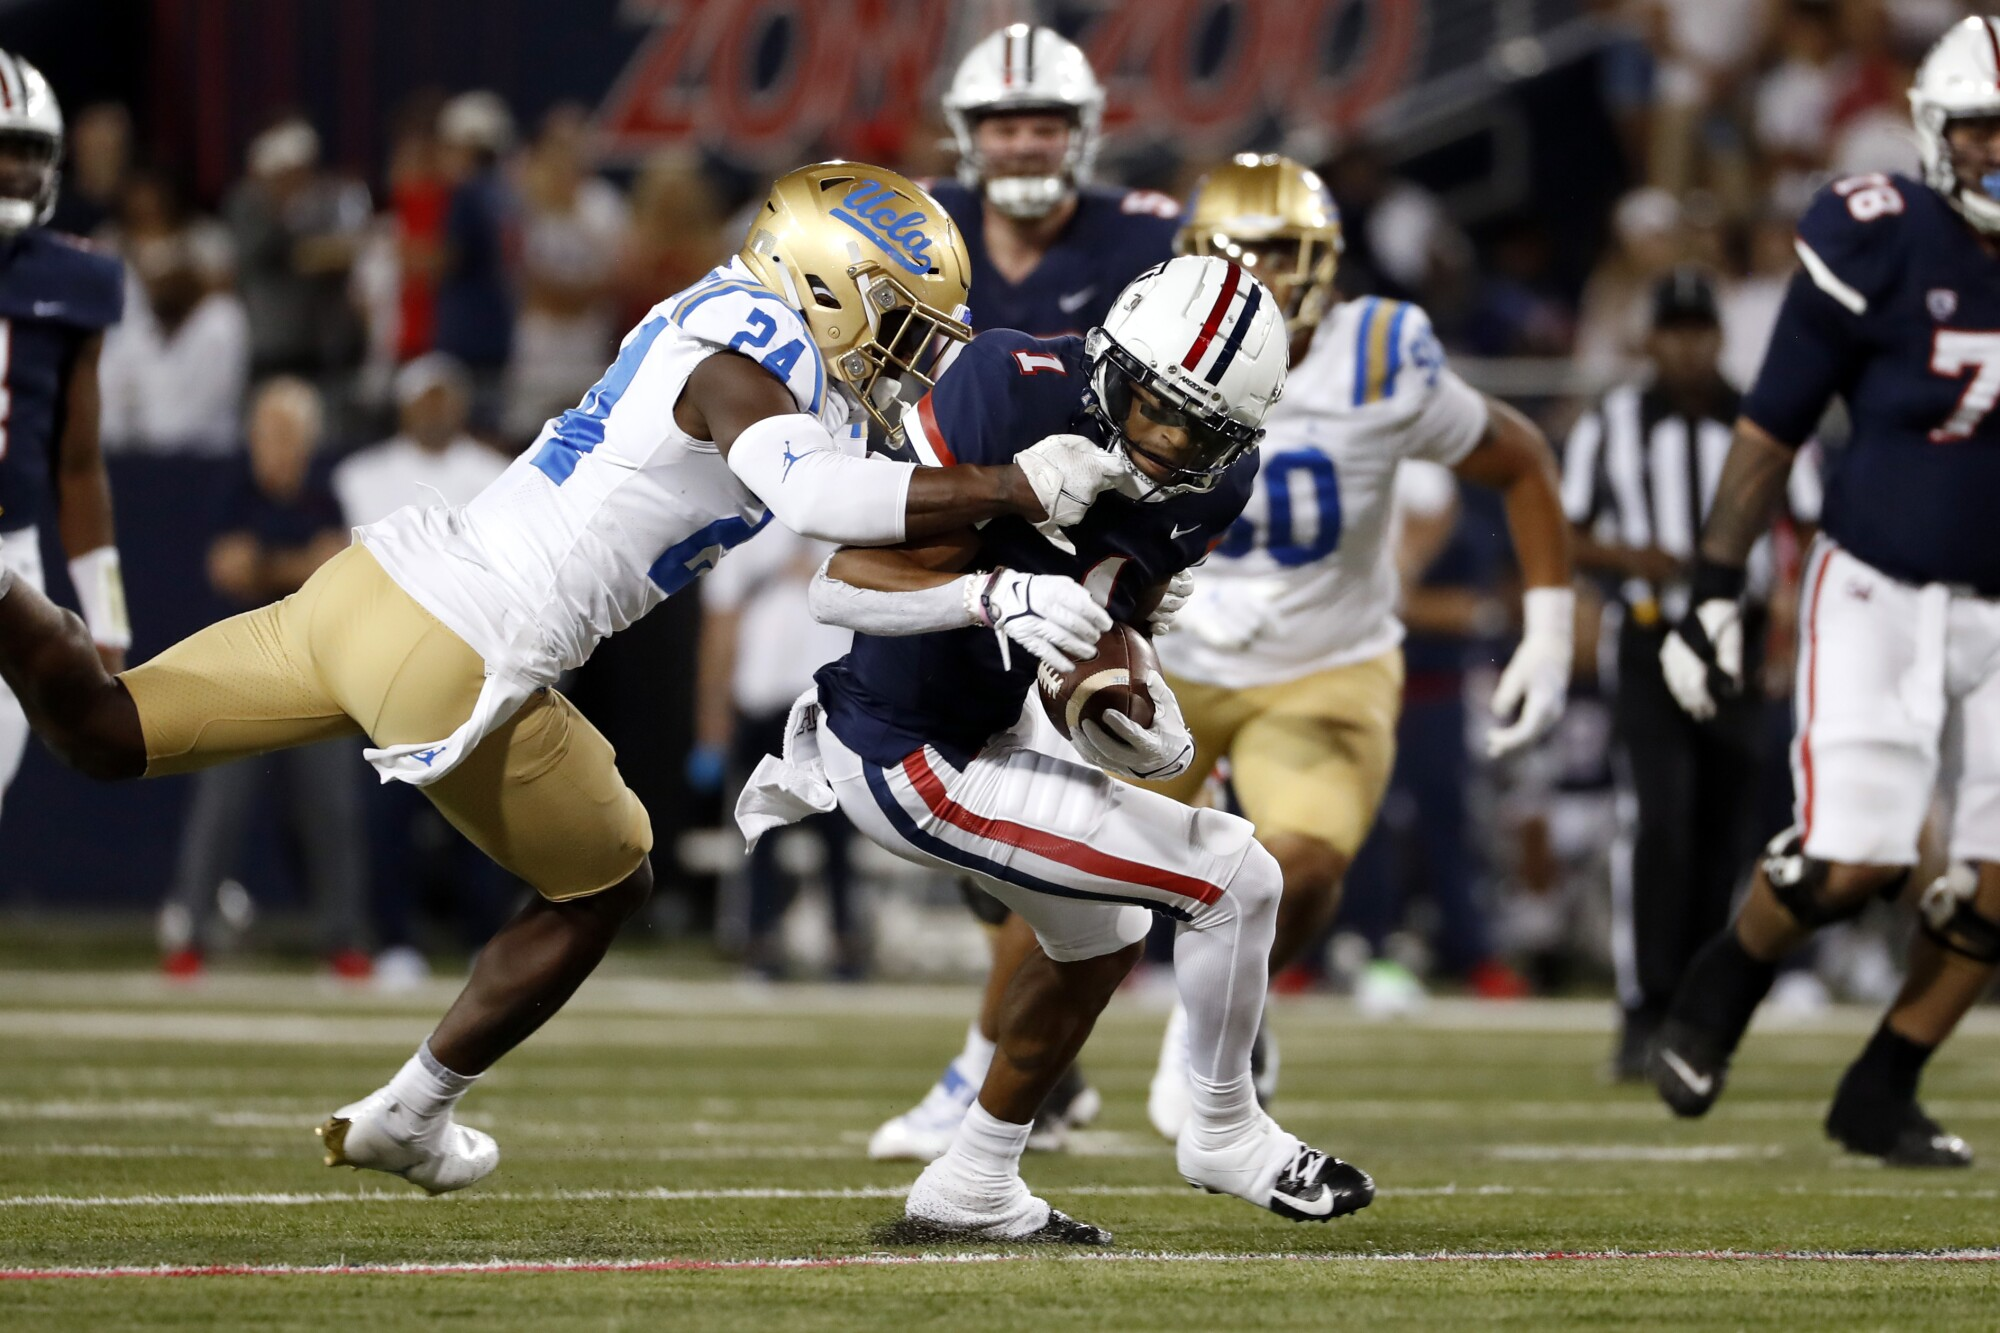 Arizona wide receiver Stanley Berryhill III is tackled by UCLA defensive back Qwuantrezz Knight